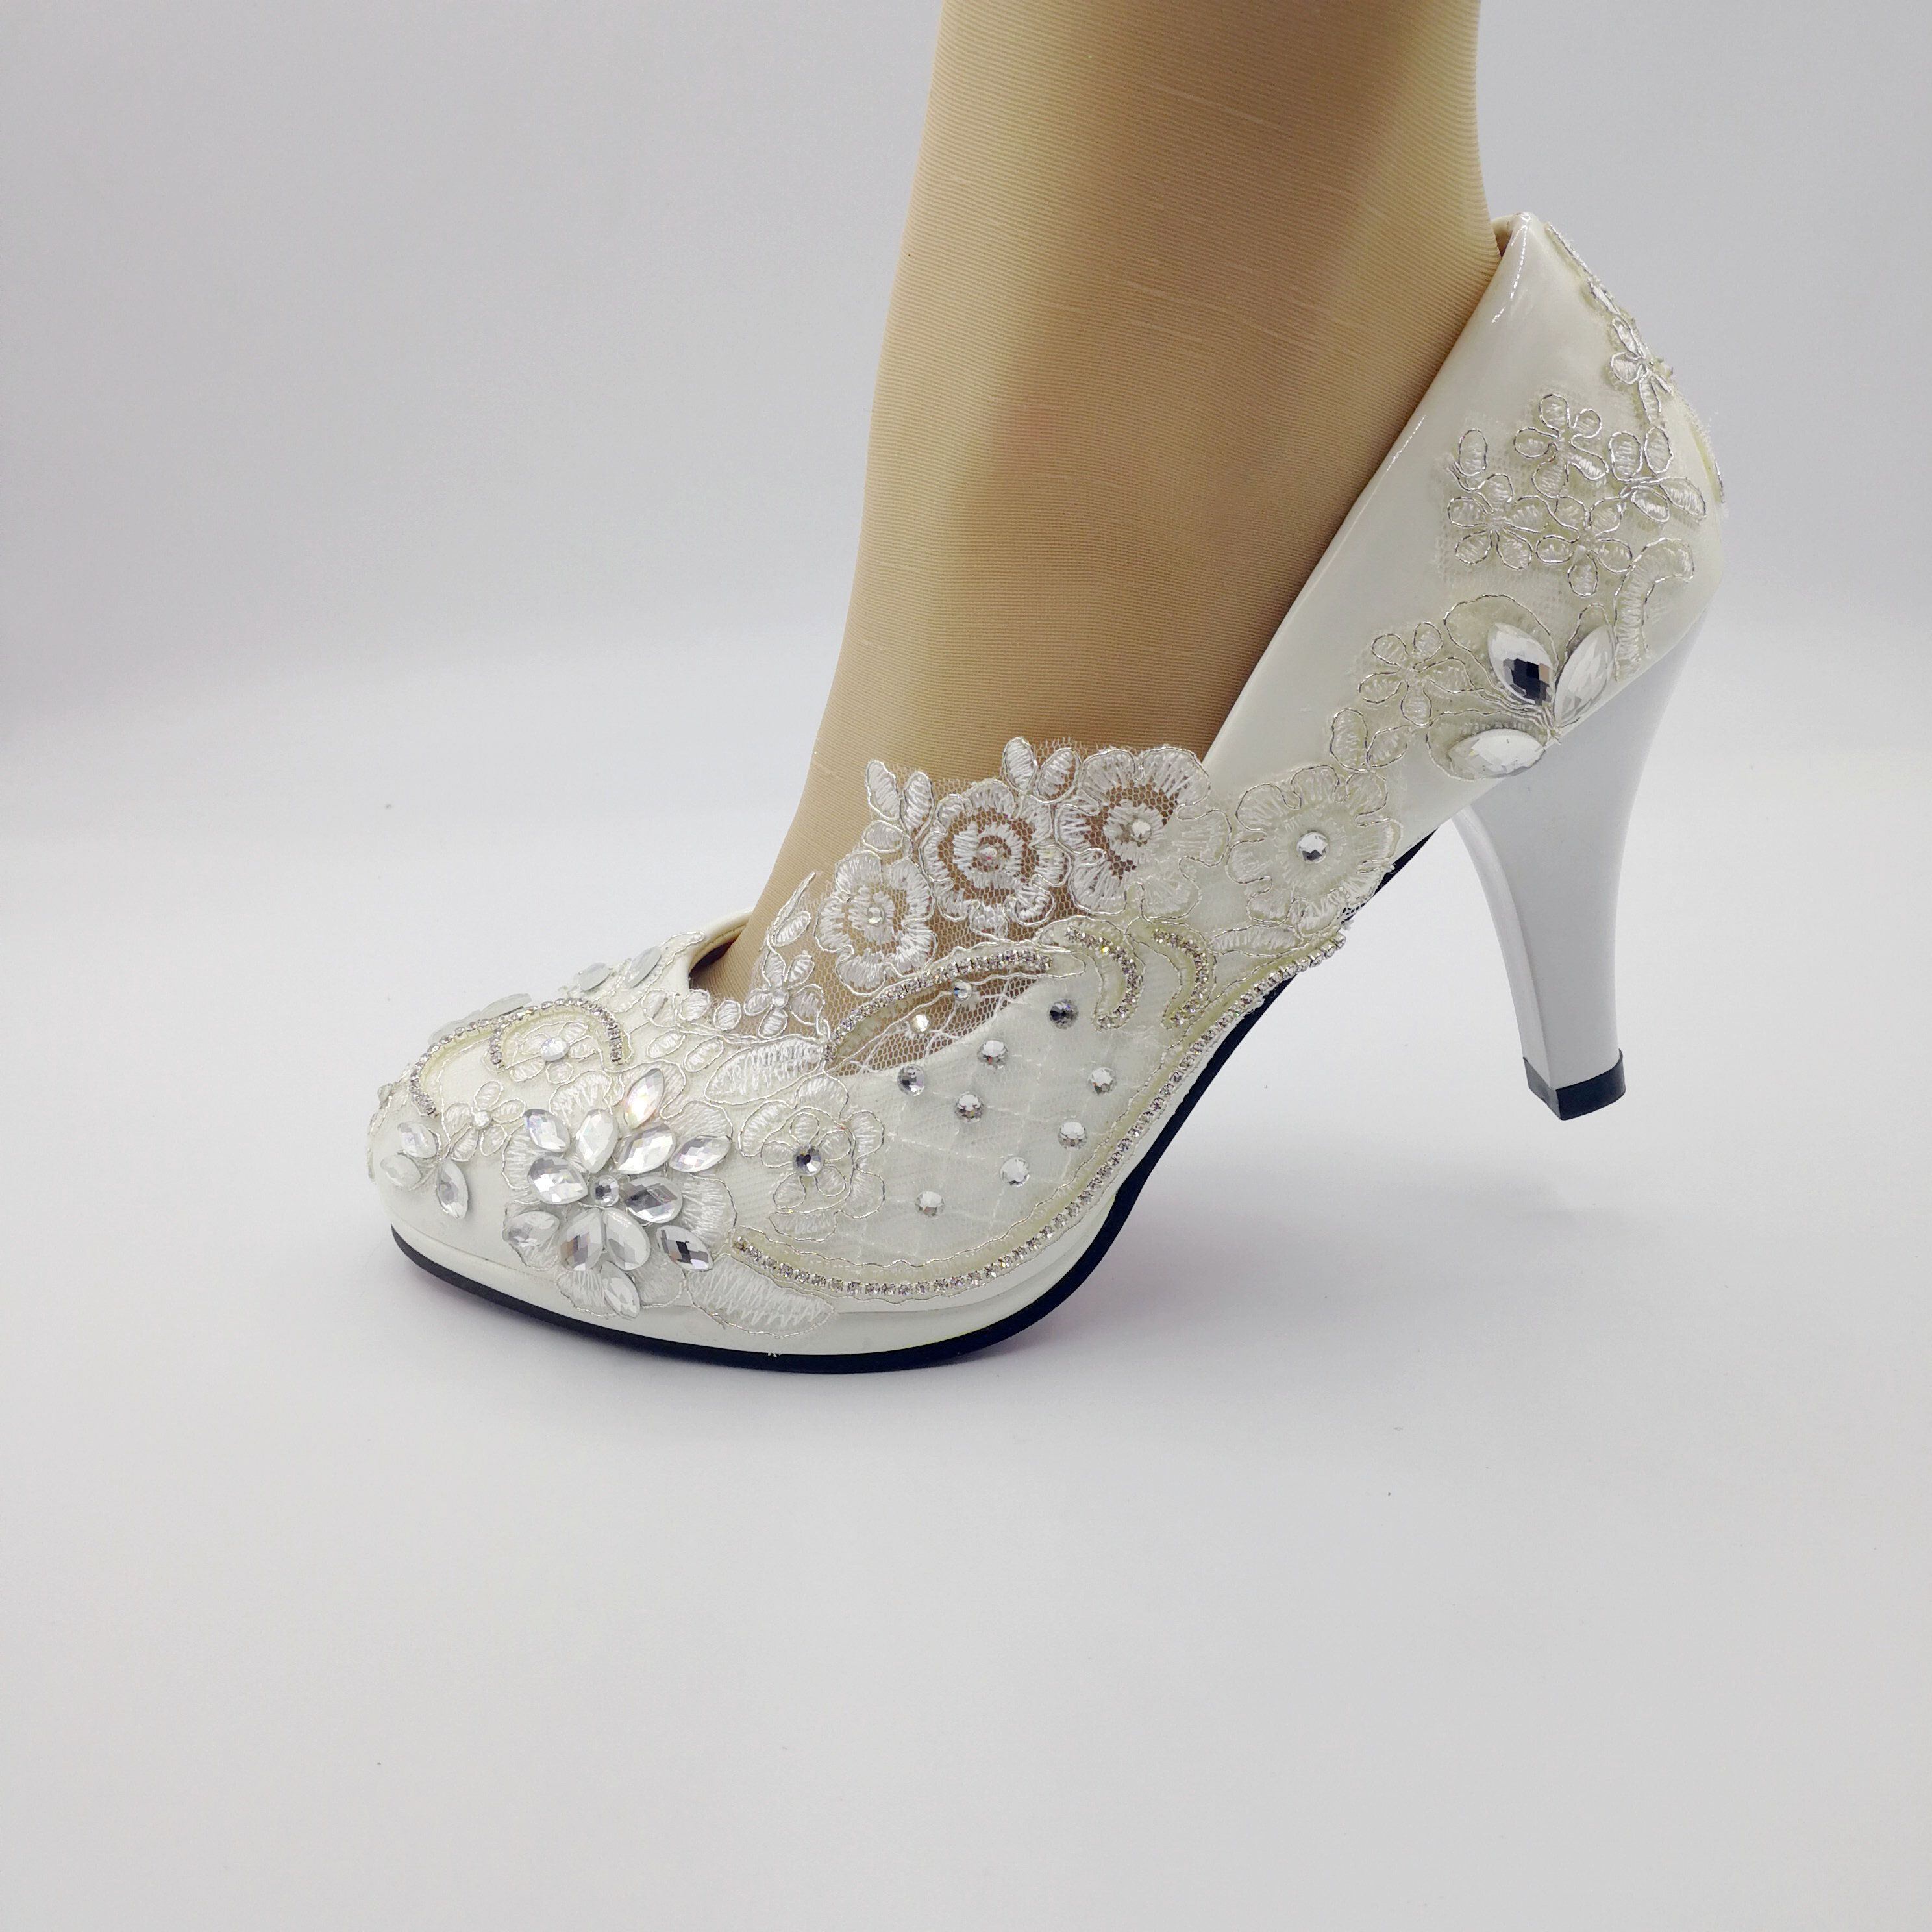 Lace Flower Lady Shoes White Lace Wedding Shoes Bridal 3 Inch Heel Shoes Size Us 5 9 5 By Uniqueweddingshoes On Etsy Https Www Etsy Com Listing 650 Seculo Xix